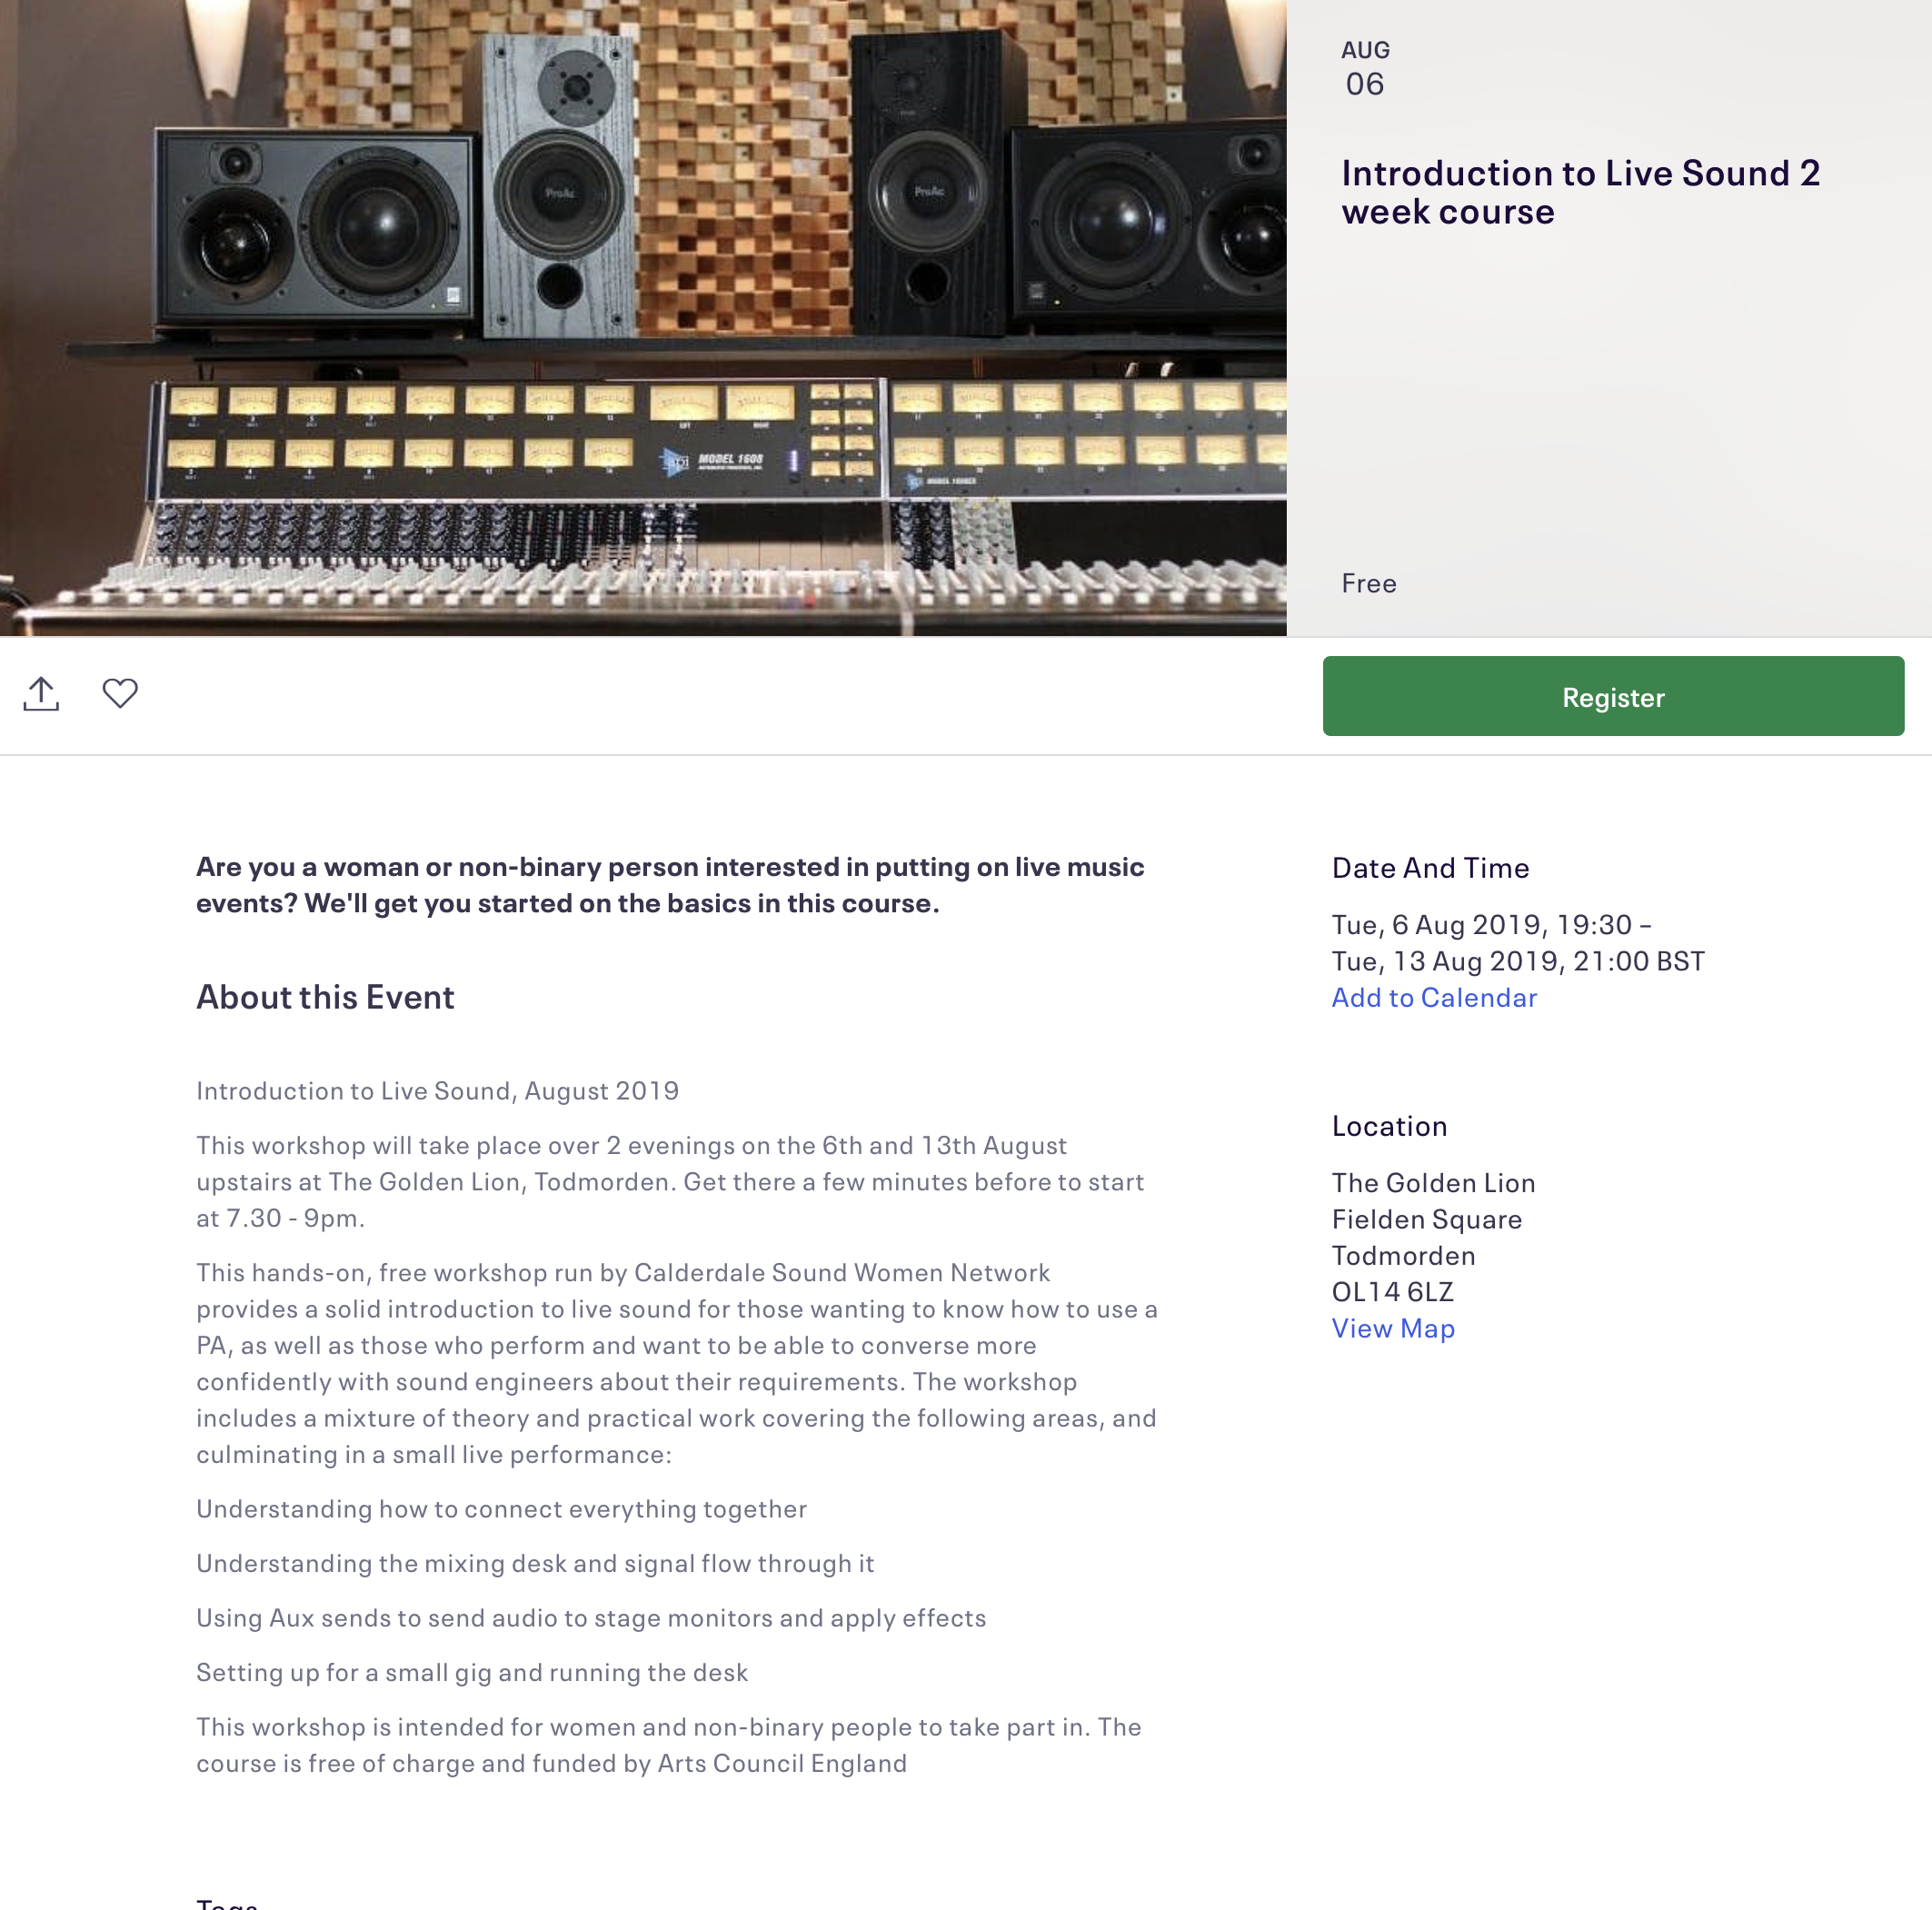 Introduction to Live Sound workshops, August 2019